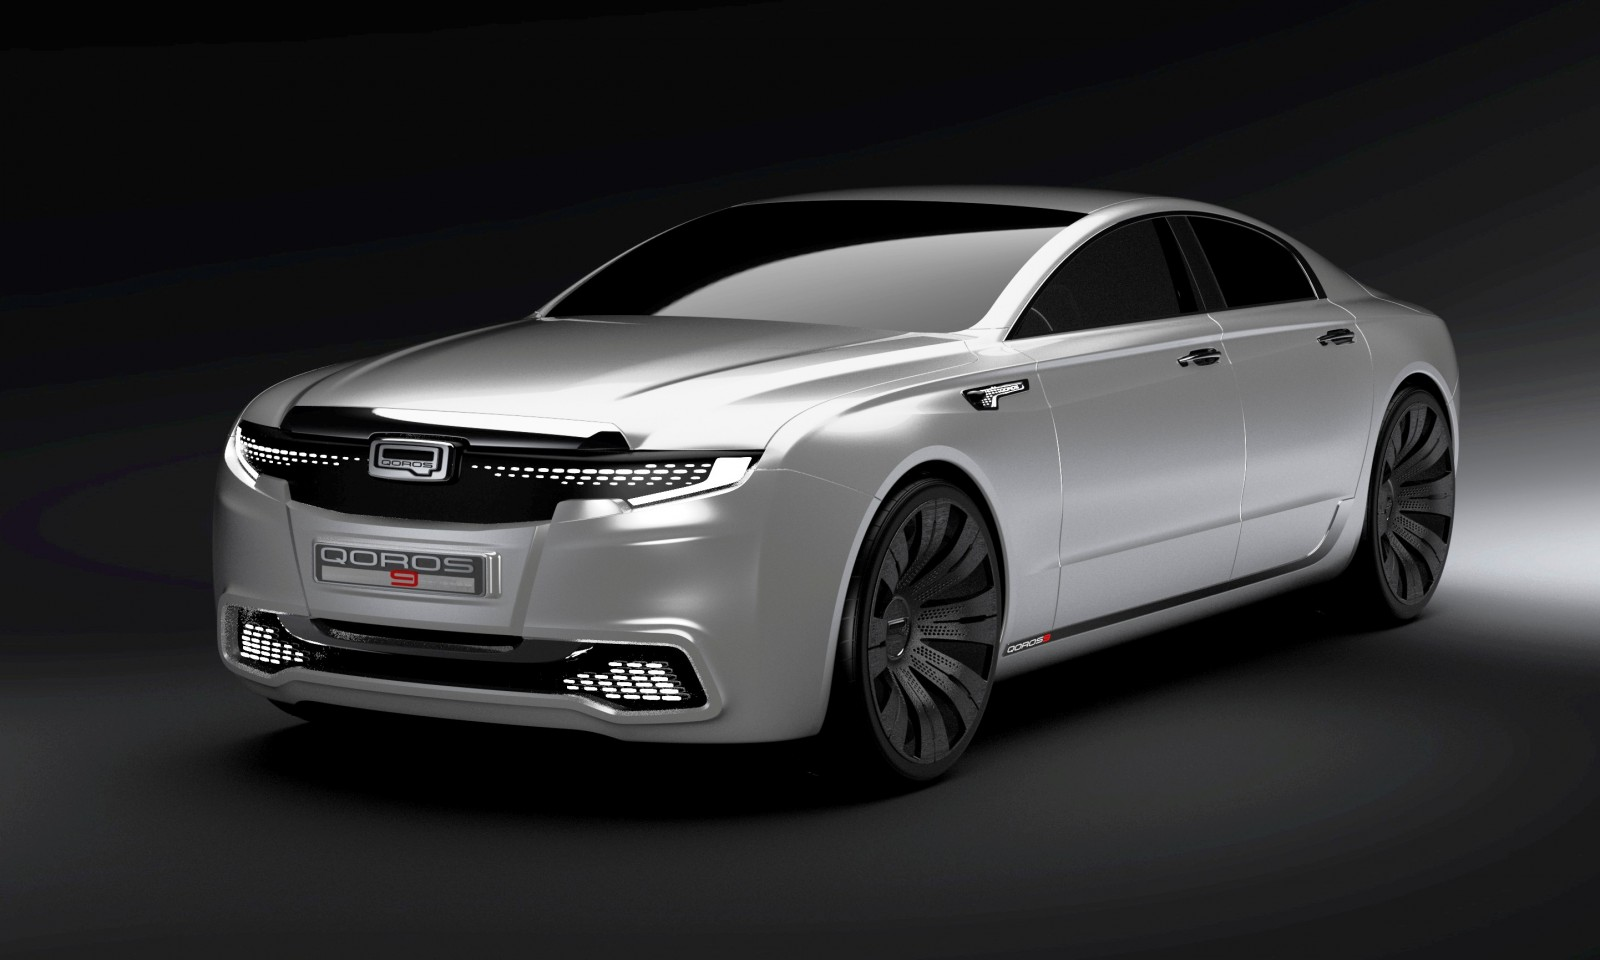 QOROS Is Little Brand With Big Ideas - Qoros9 and Flagship Concept Designs Maturing 2